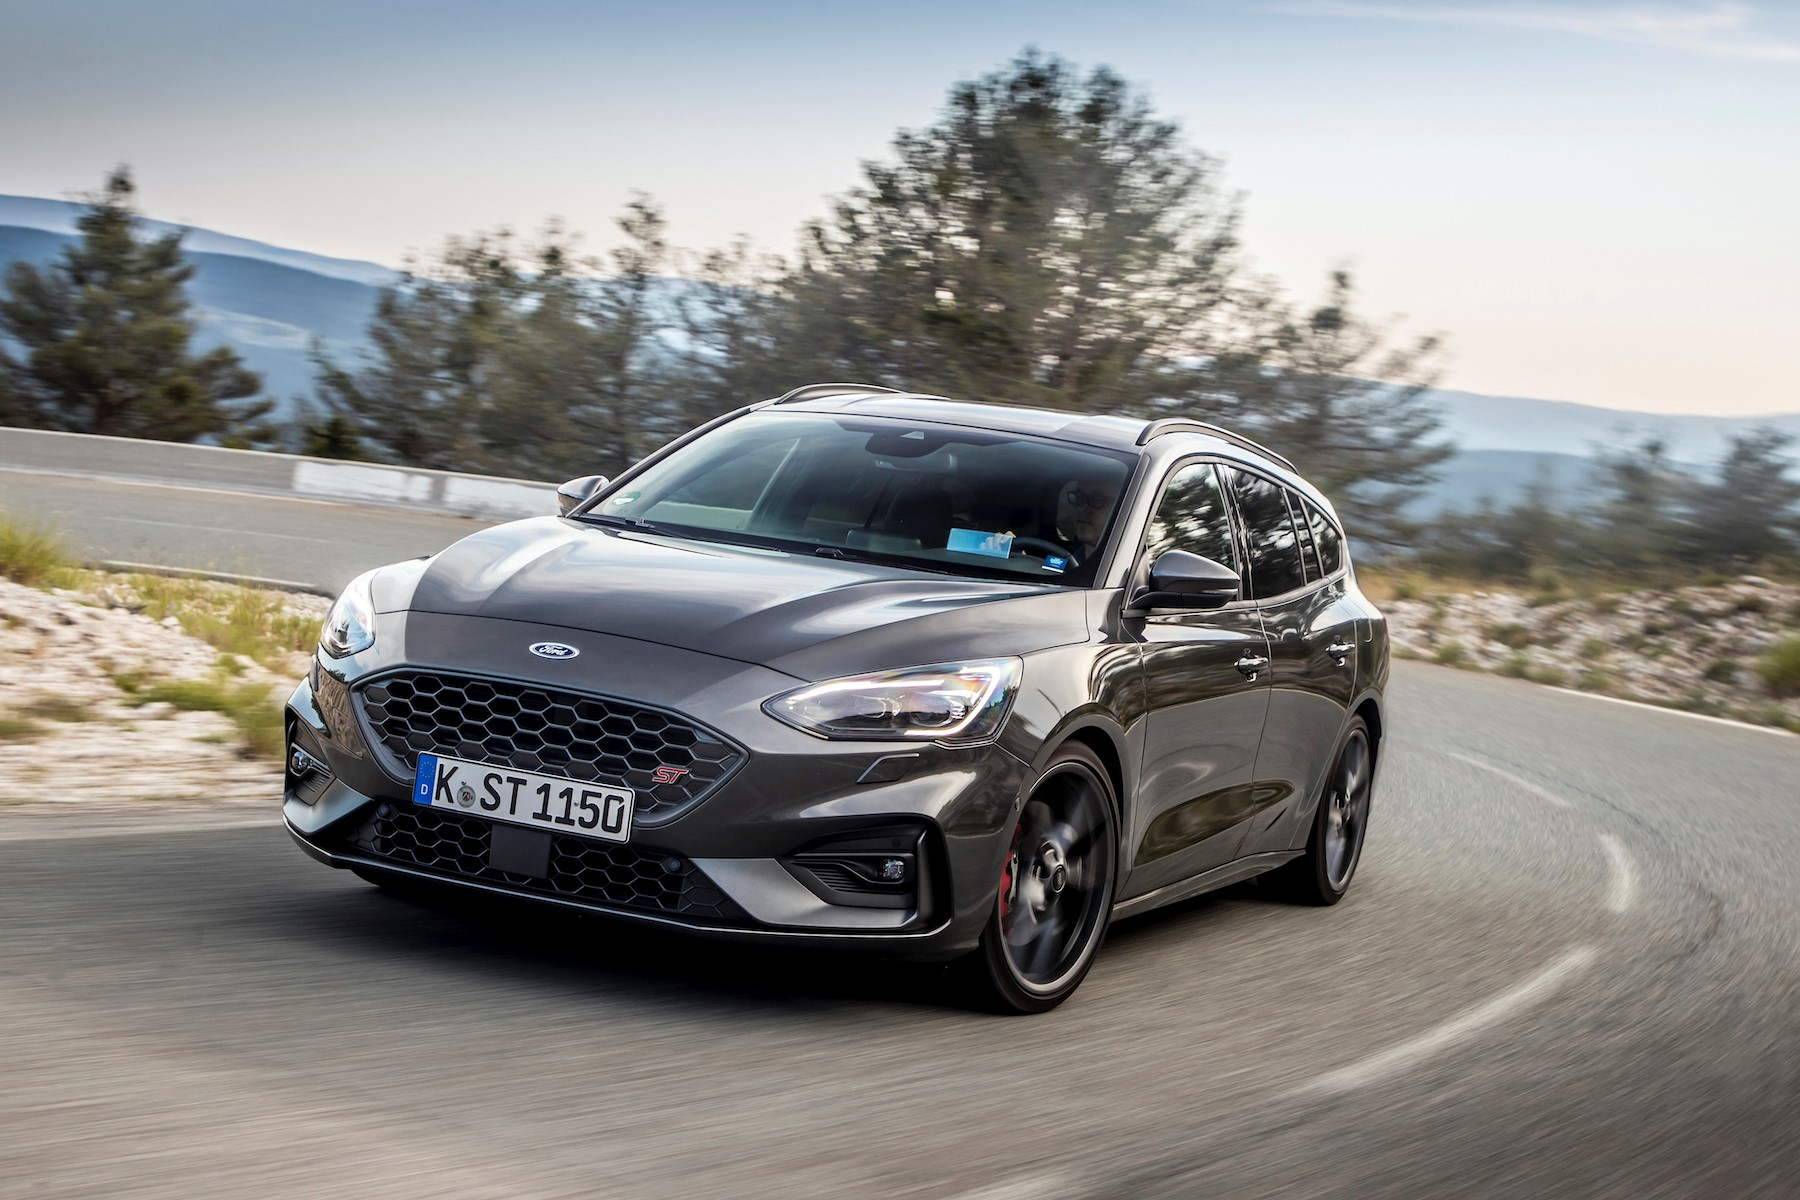 ford focus st estate 2020 review